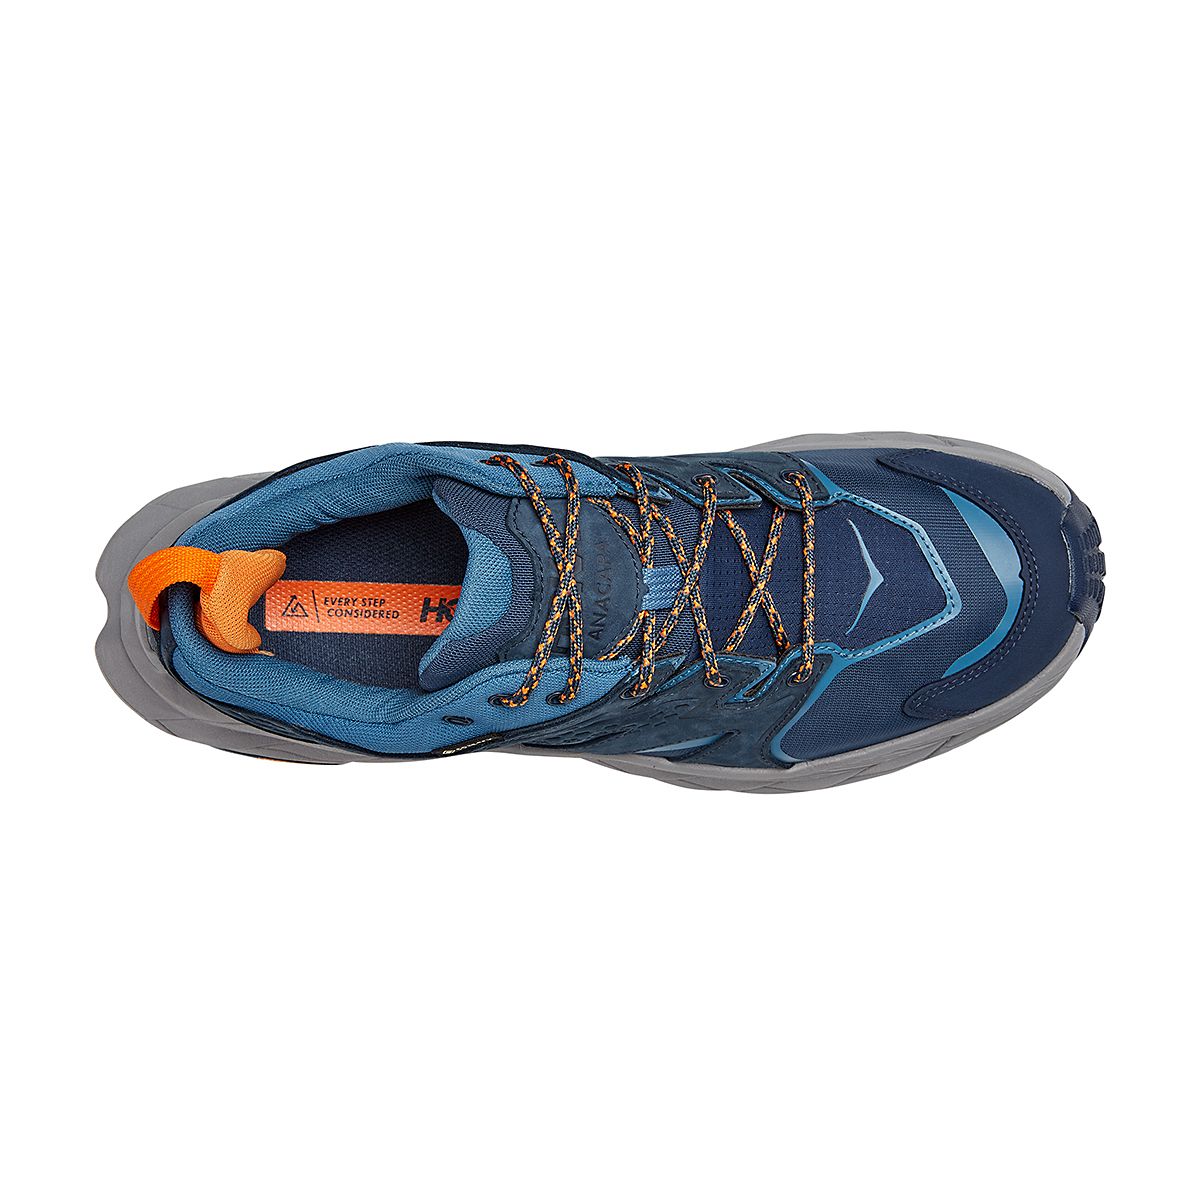 Men's Hoka One One Anacapa Low Gore-Tex Trail Running Shoe - Color: Outer Space/Real Teal - Size: 7 - Width: Regular, Outer Space/Real Teal, large, image 5